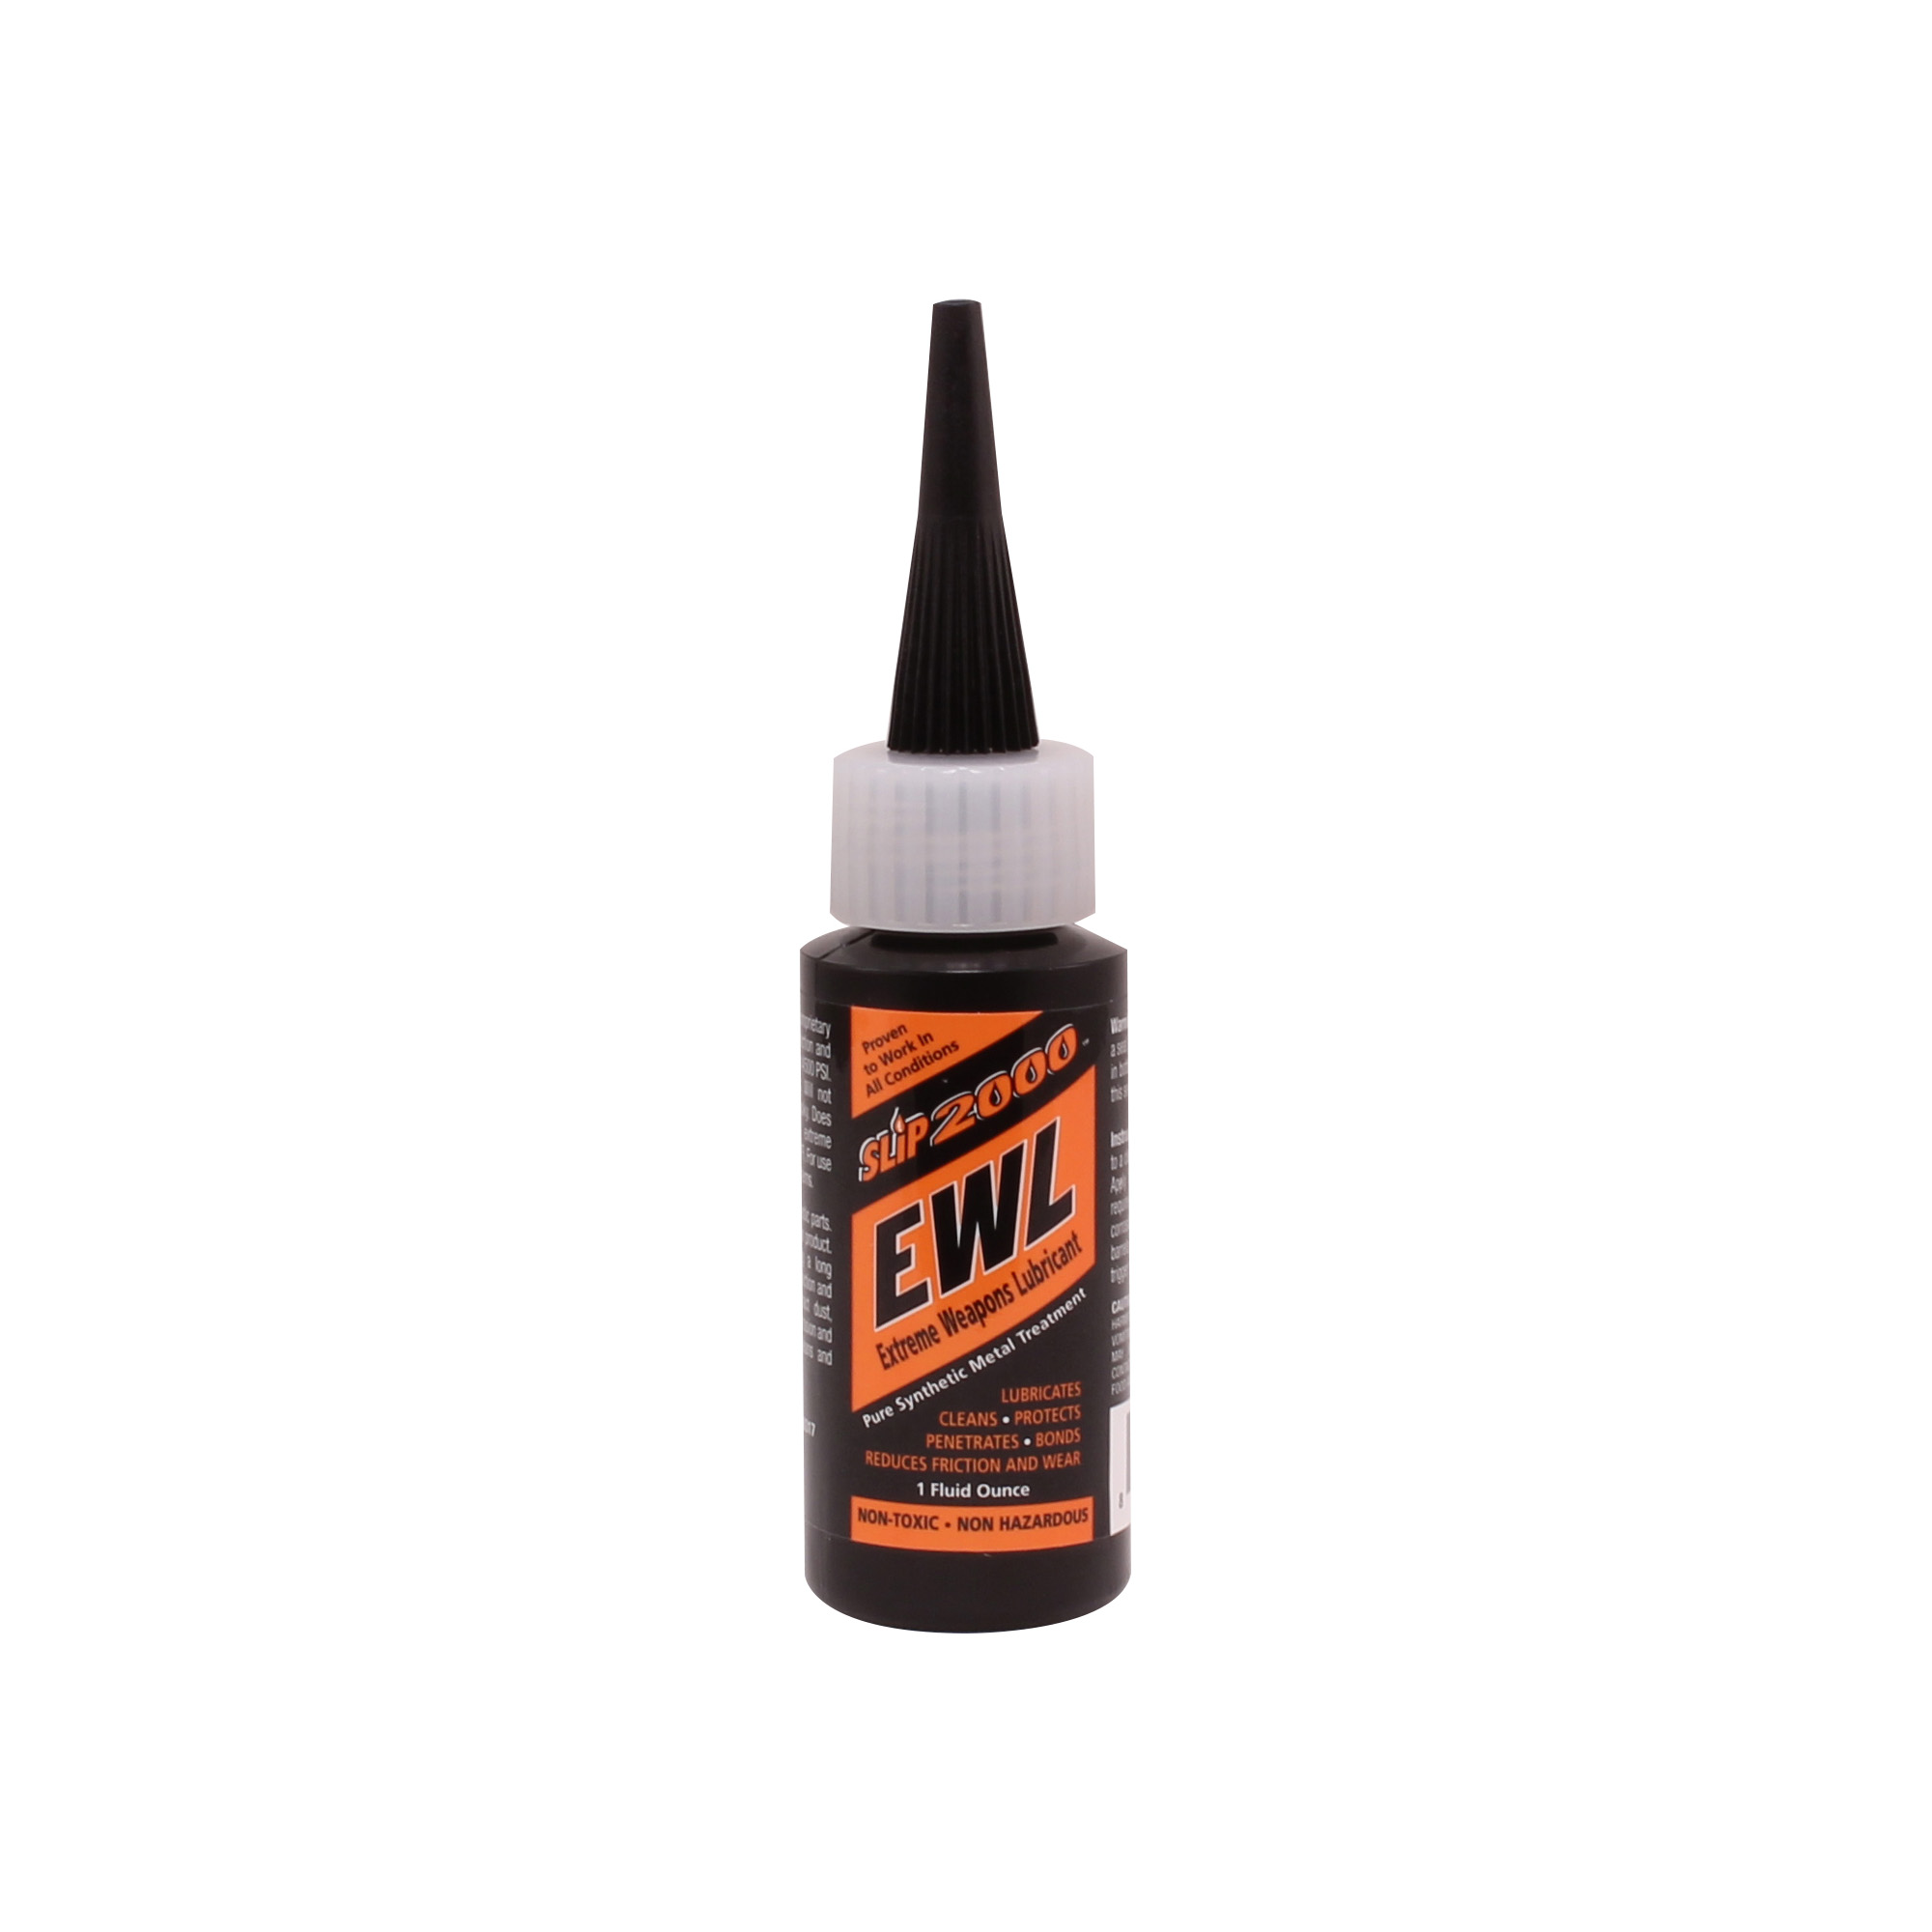 """Slip 2000 provides the American gun industry with the best lubricants and cleaners on the market while addressing both human health and environmental issues. They offer non-toxic"""" non-hazardous and biodegradable gun lubricants and cleaners that allow faster and safer ways to clean your weapons."""